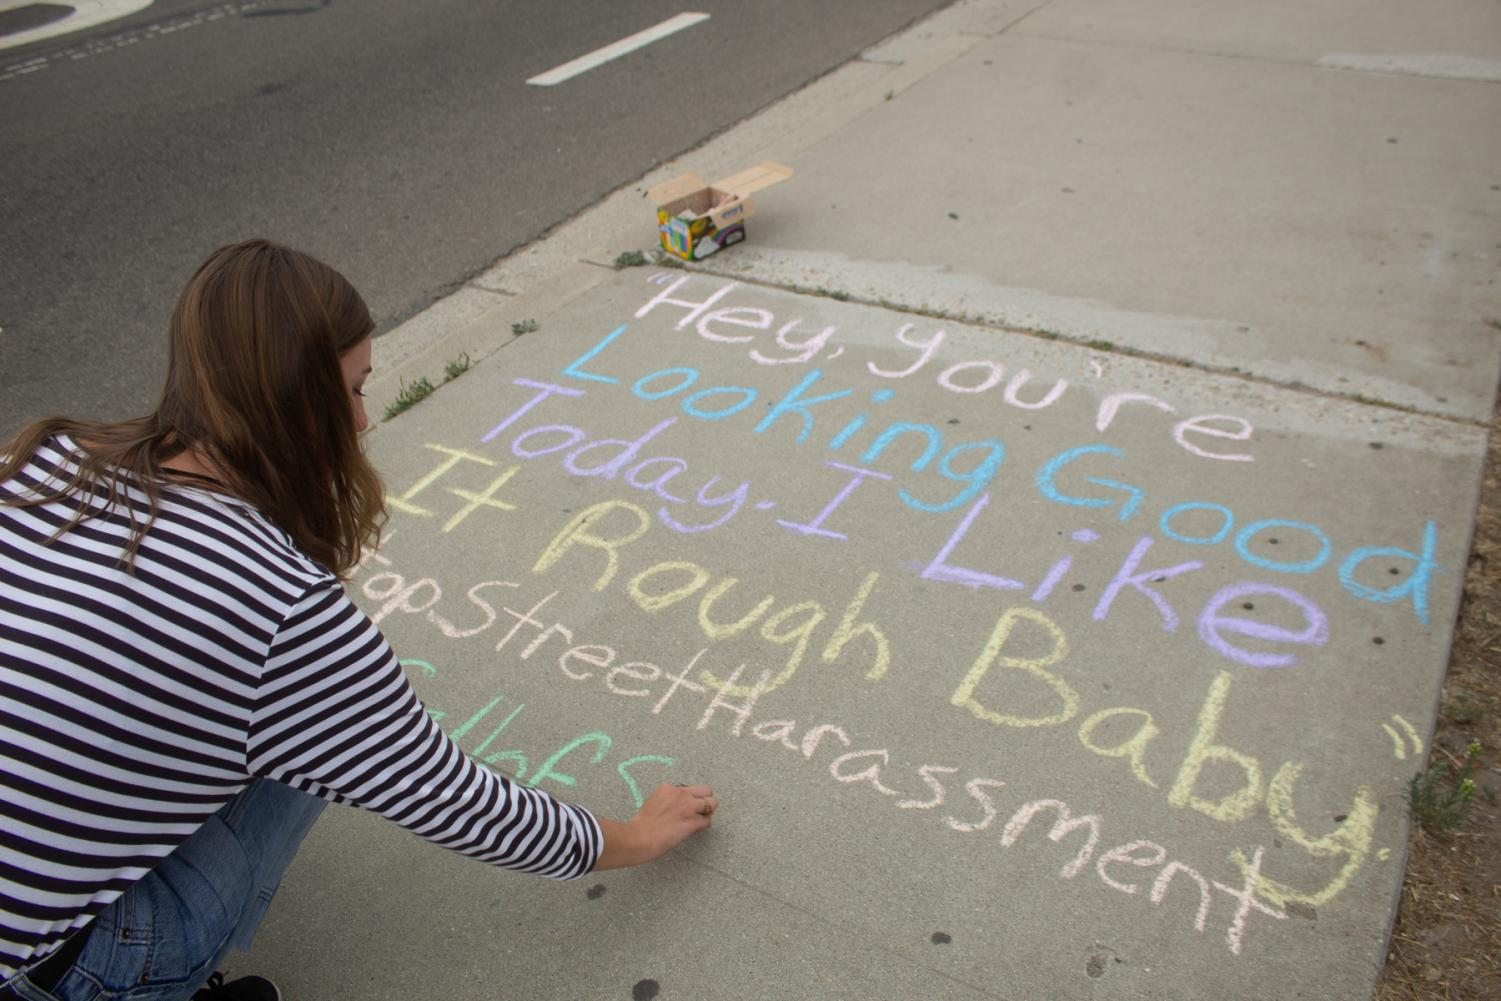 City College student Rebeca Adam chalks a quote from a sexual harassment story at Santa Barbara City College in Santa Barbara, Calif., on Thursday, Sept. 26, 2019. She chalks sidewalks at least three times a week to share stories of sexual harassment and assault that are messaged to her on her instagram, @catcallsofsantabarbara.